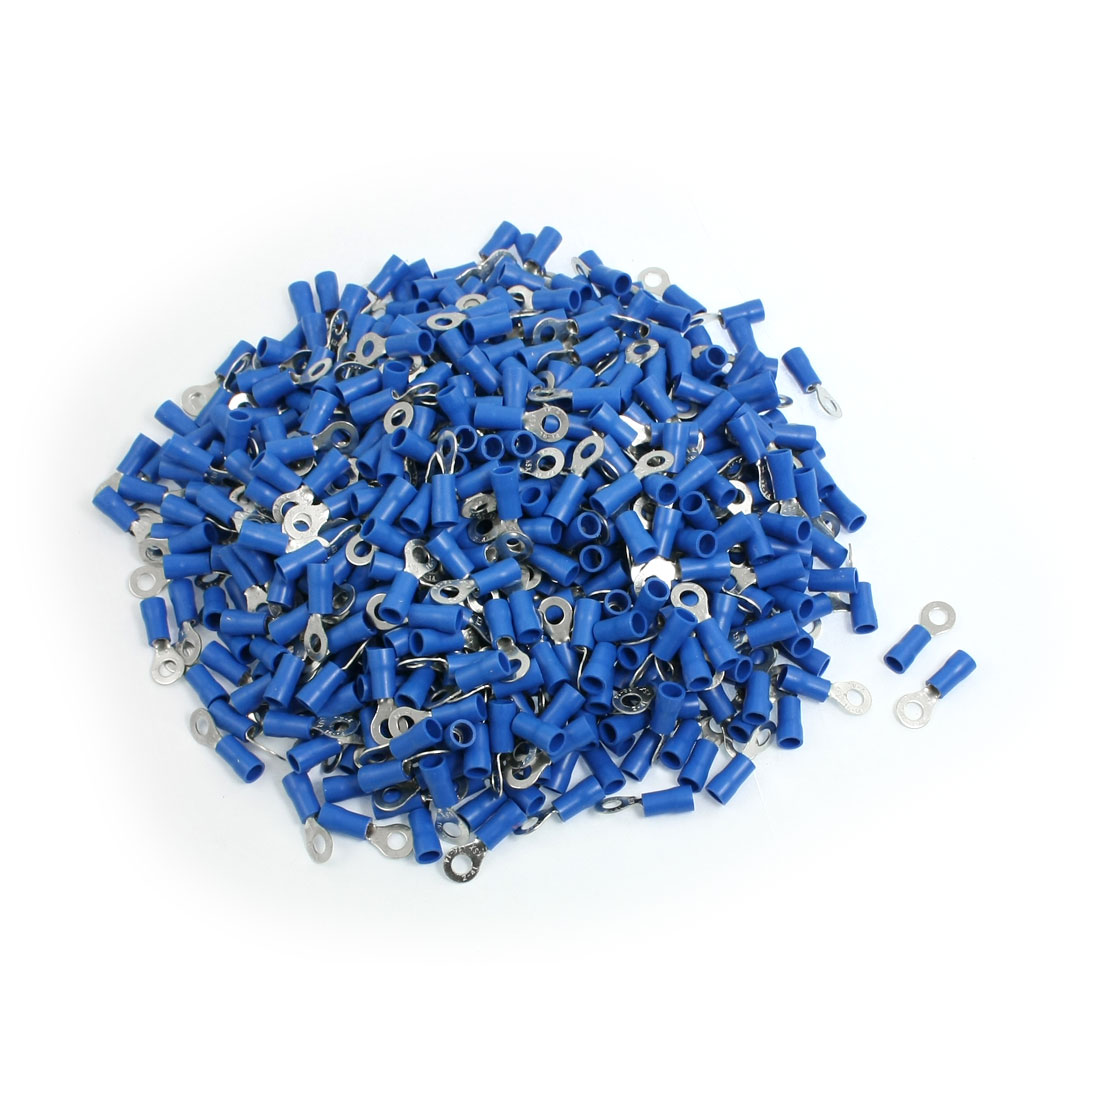 1000-x-Blue-PVC-Insulating-Sleeve-Ring-Terminals-Cable-Lug-RV2-4L-AWG-16-14